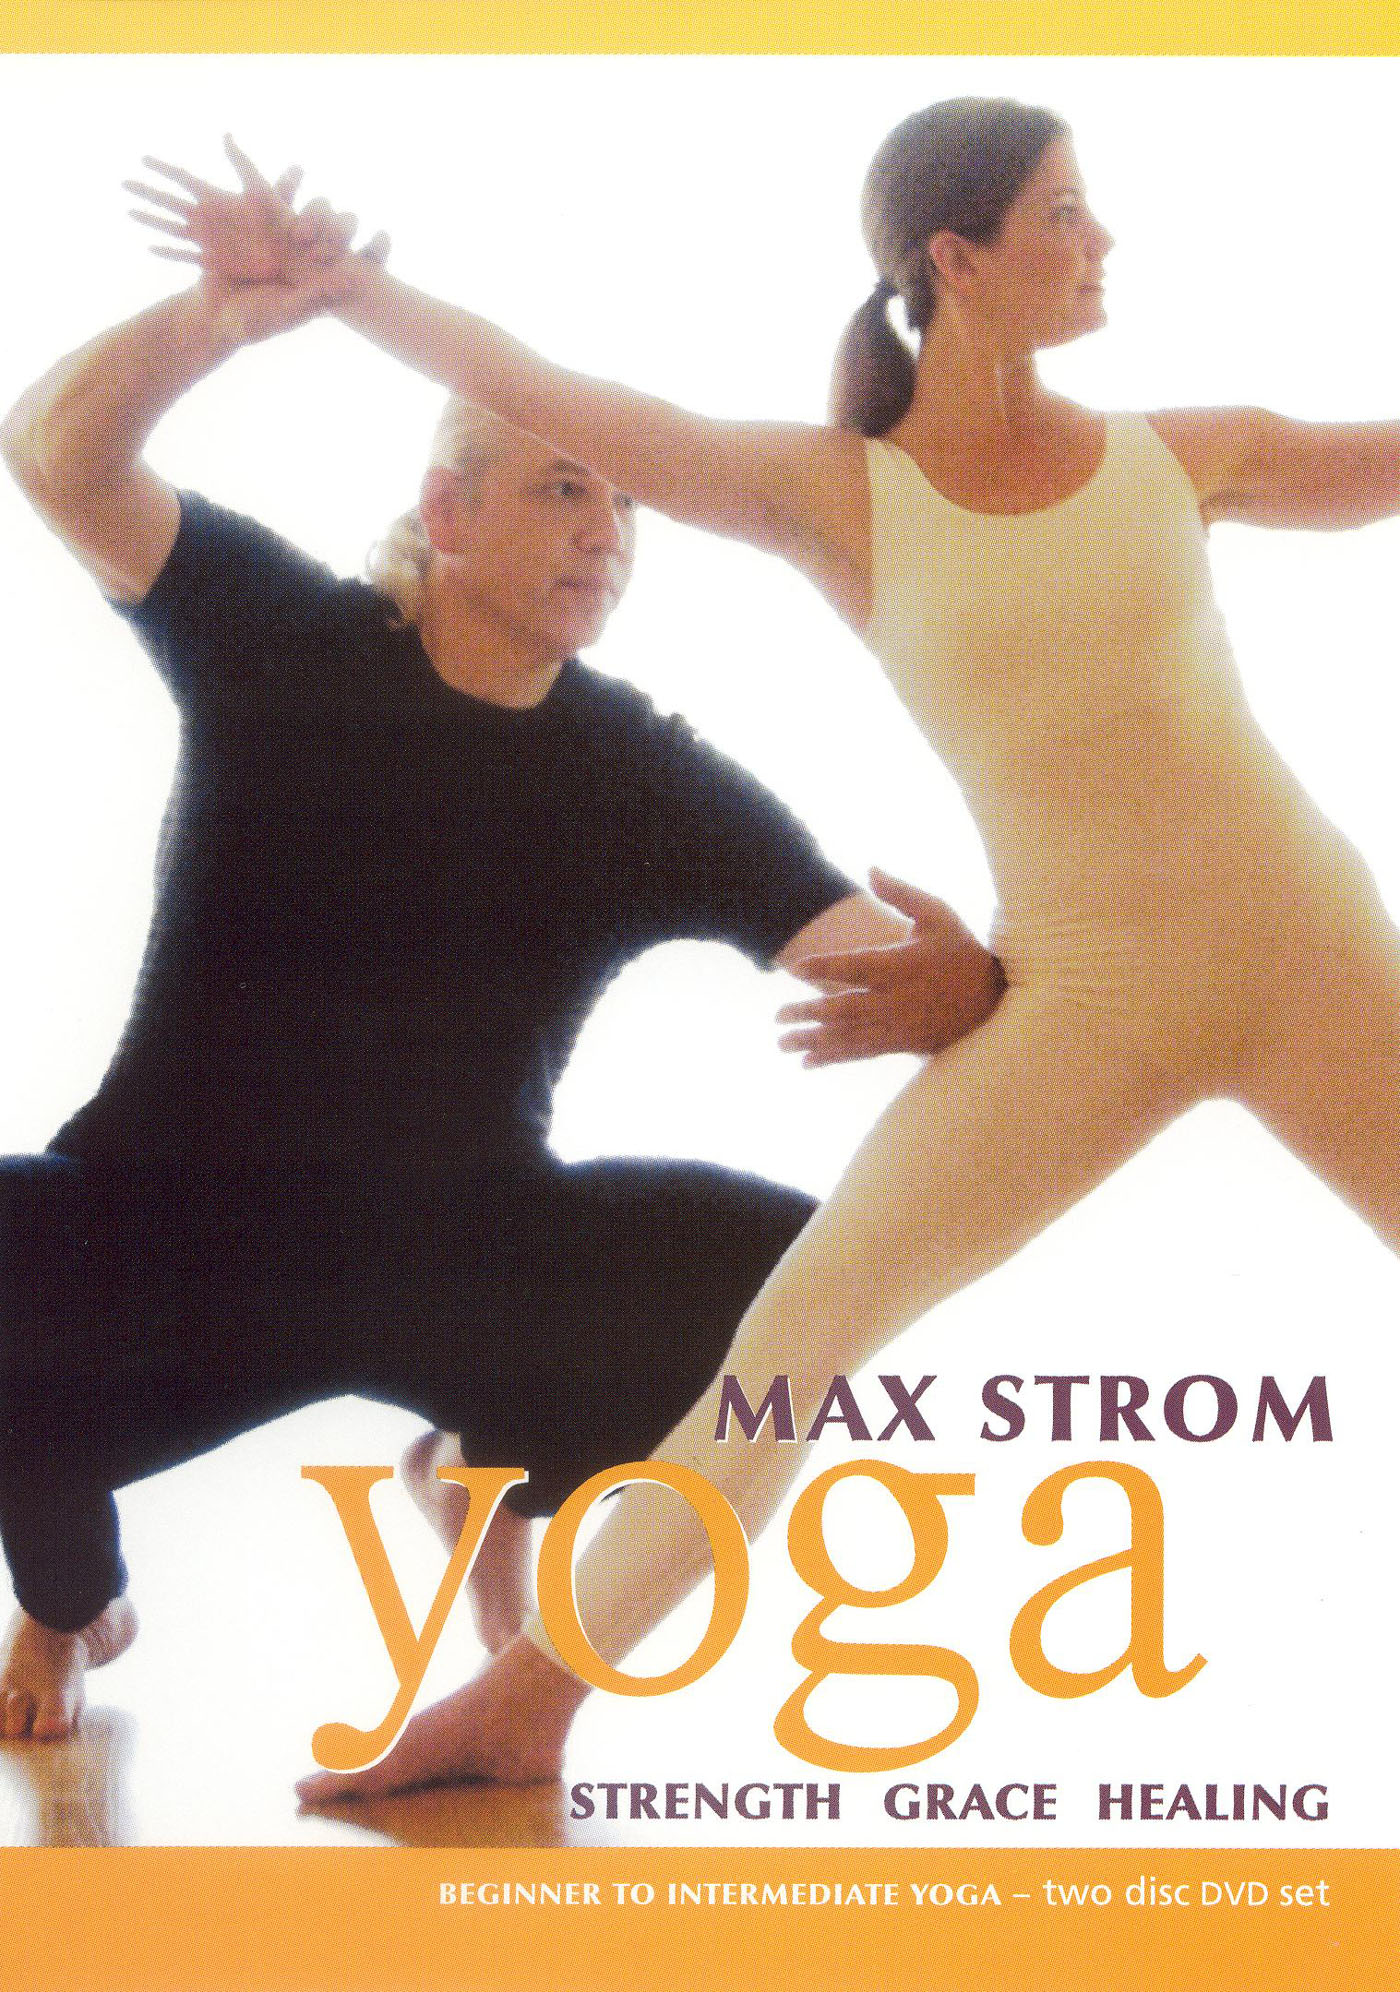 Max Strom: Strength, Grace, Healing